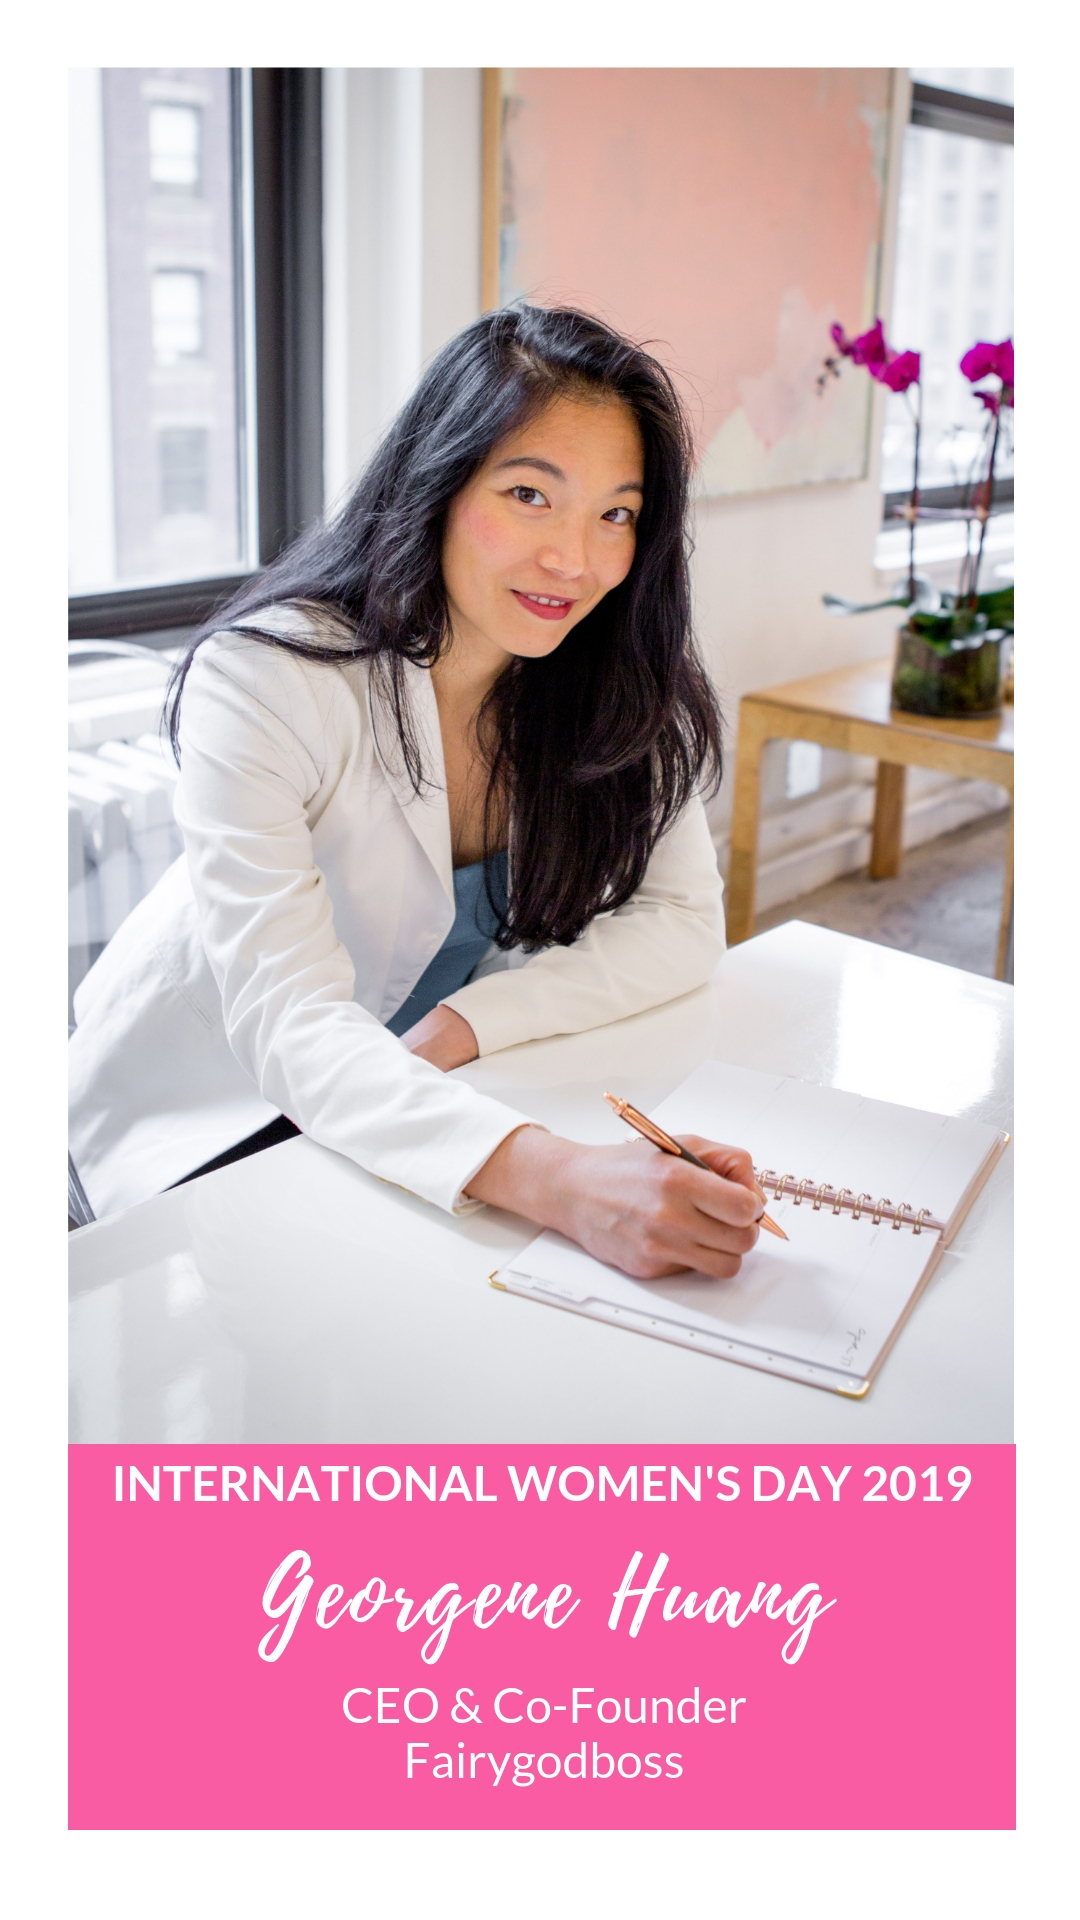 International Women's Day - Georgene Huang